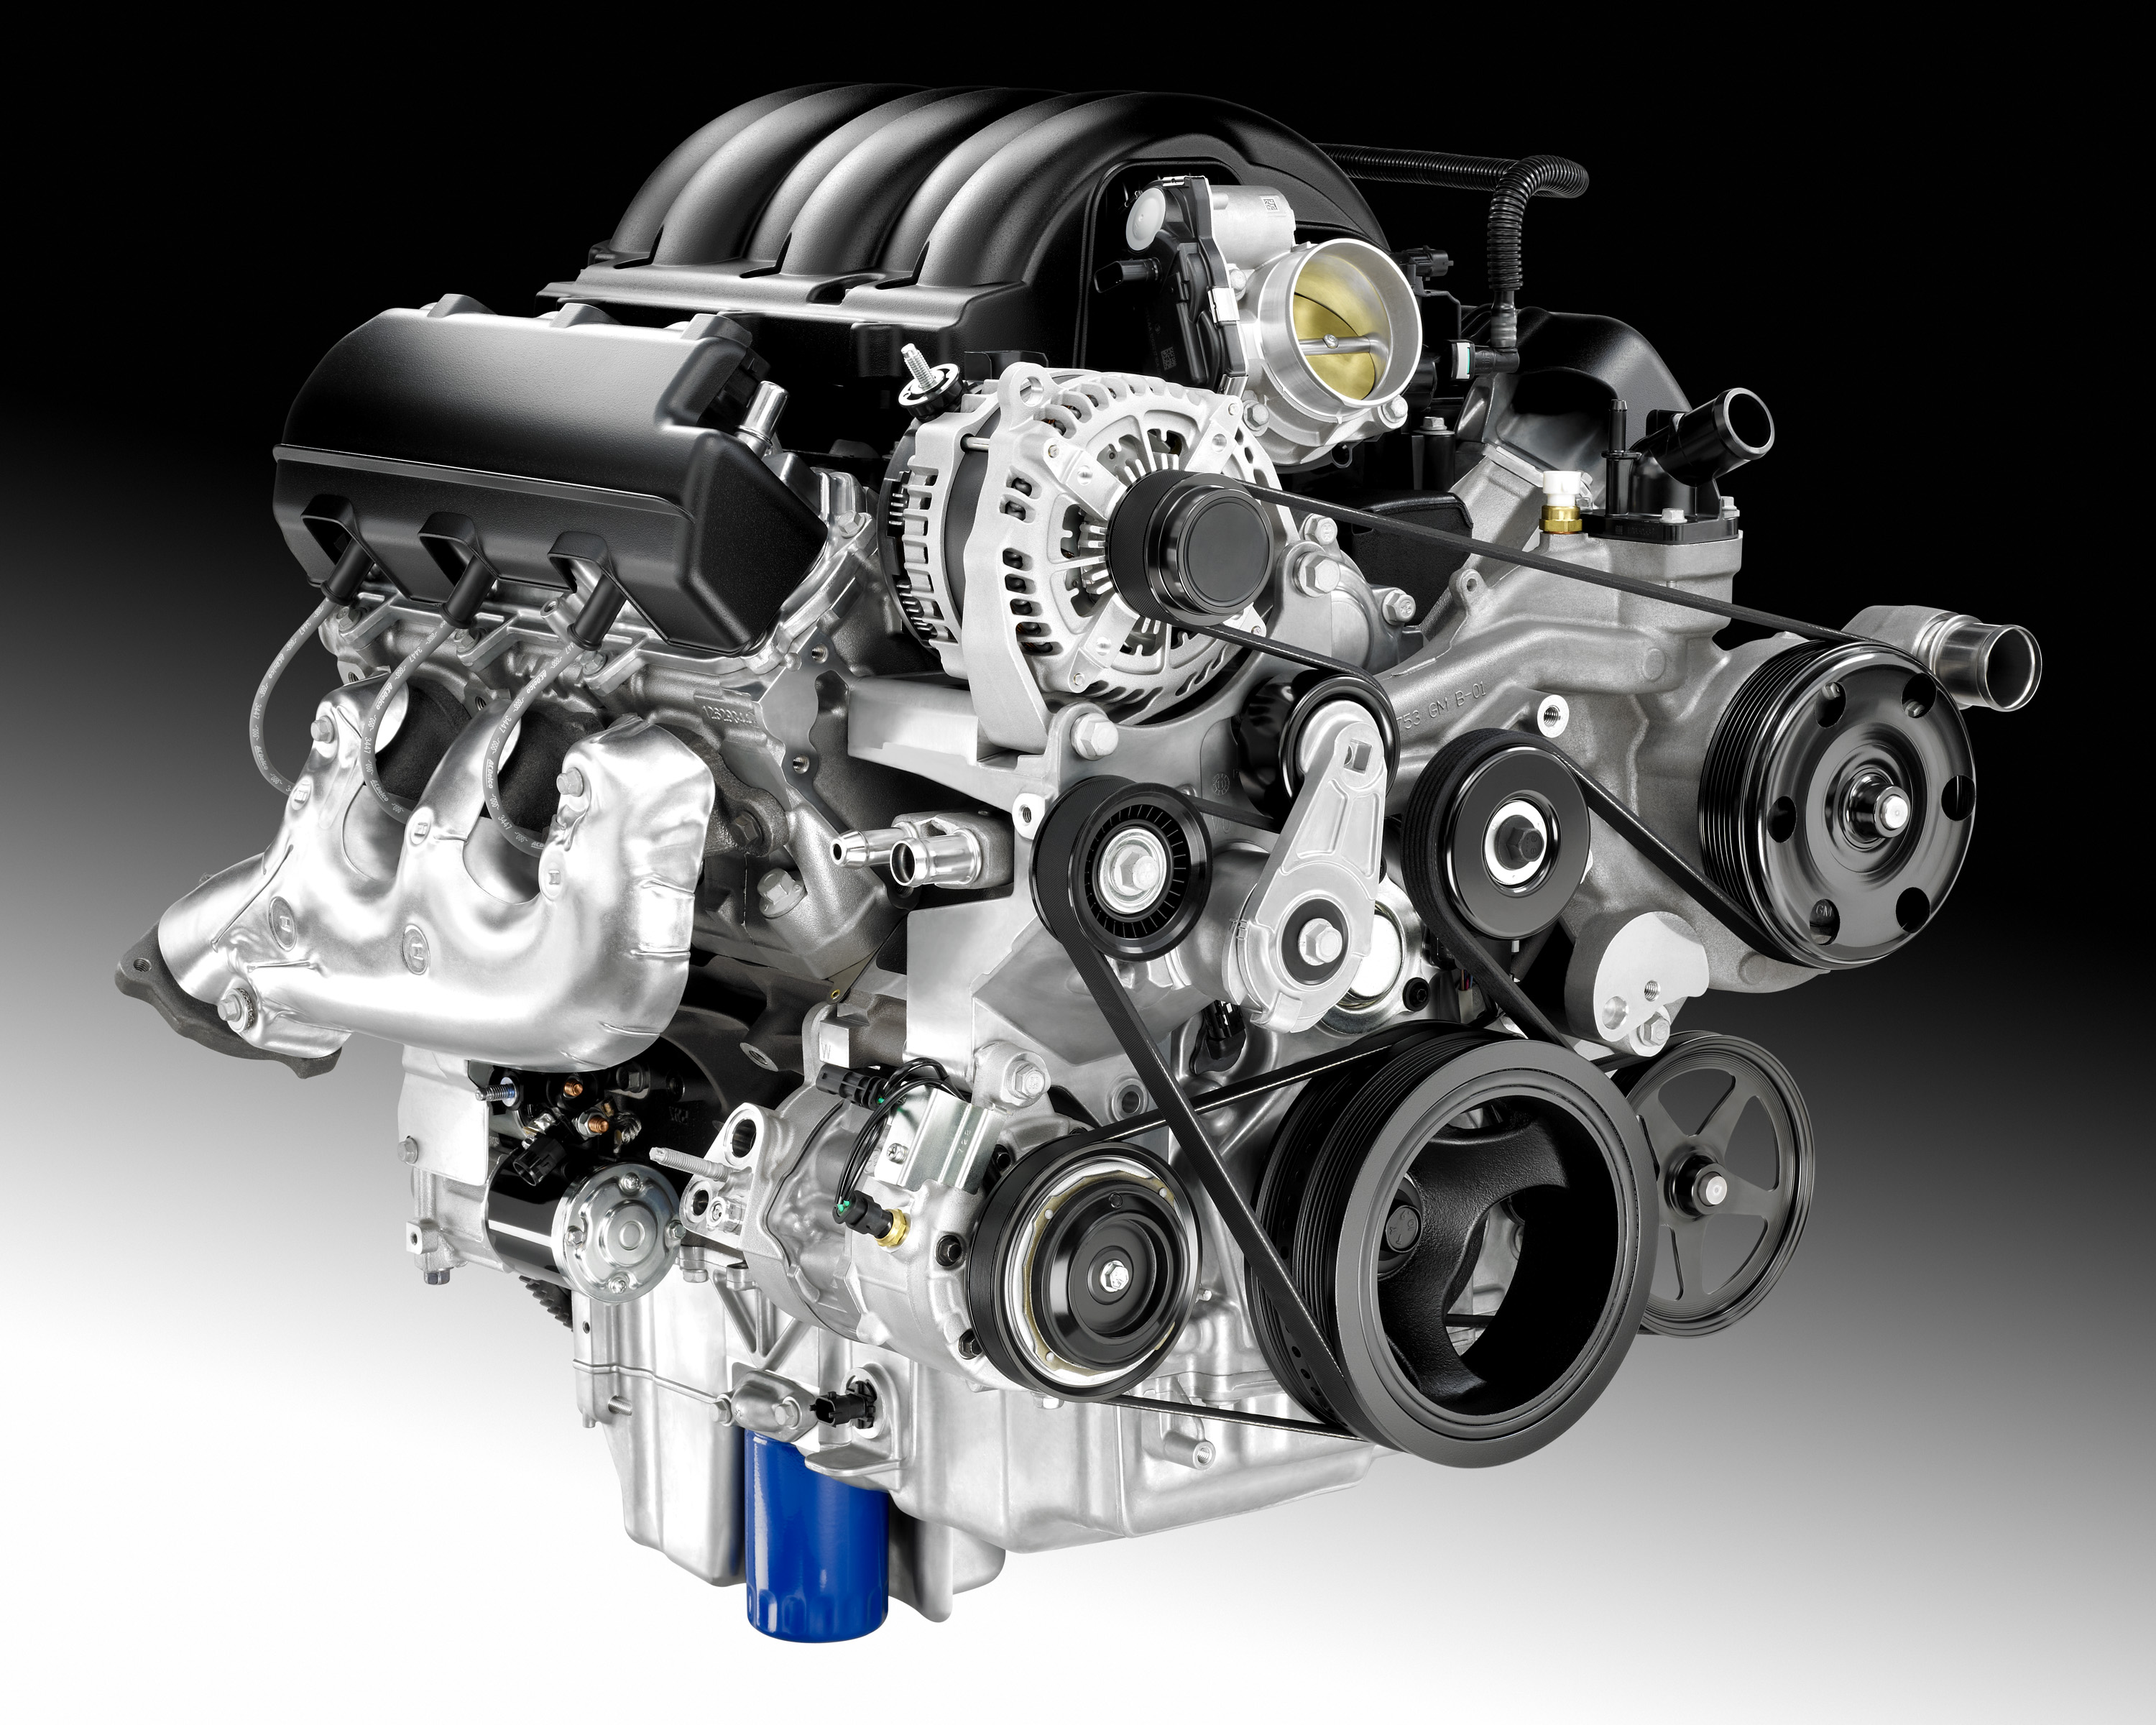 trio of new ecotec3 engines powers silverado and sierra rh media gm com Chevrolet 5.3 Engine Diagram Chevy 4.3 Vortec Engine Diagram